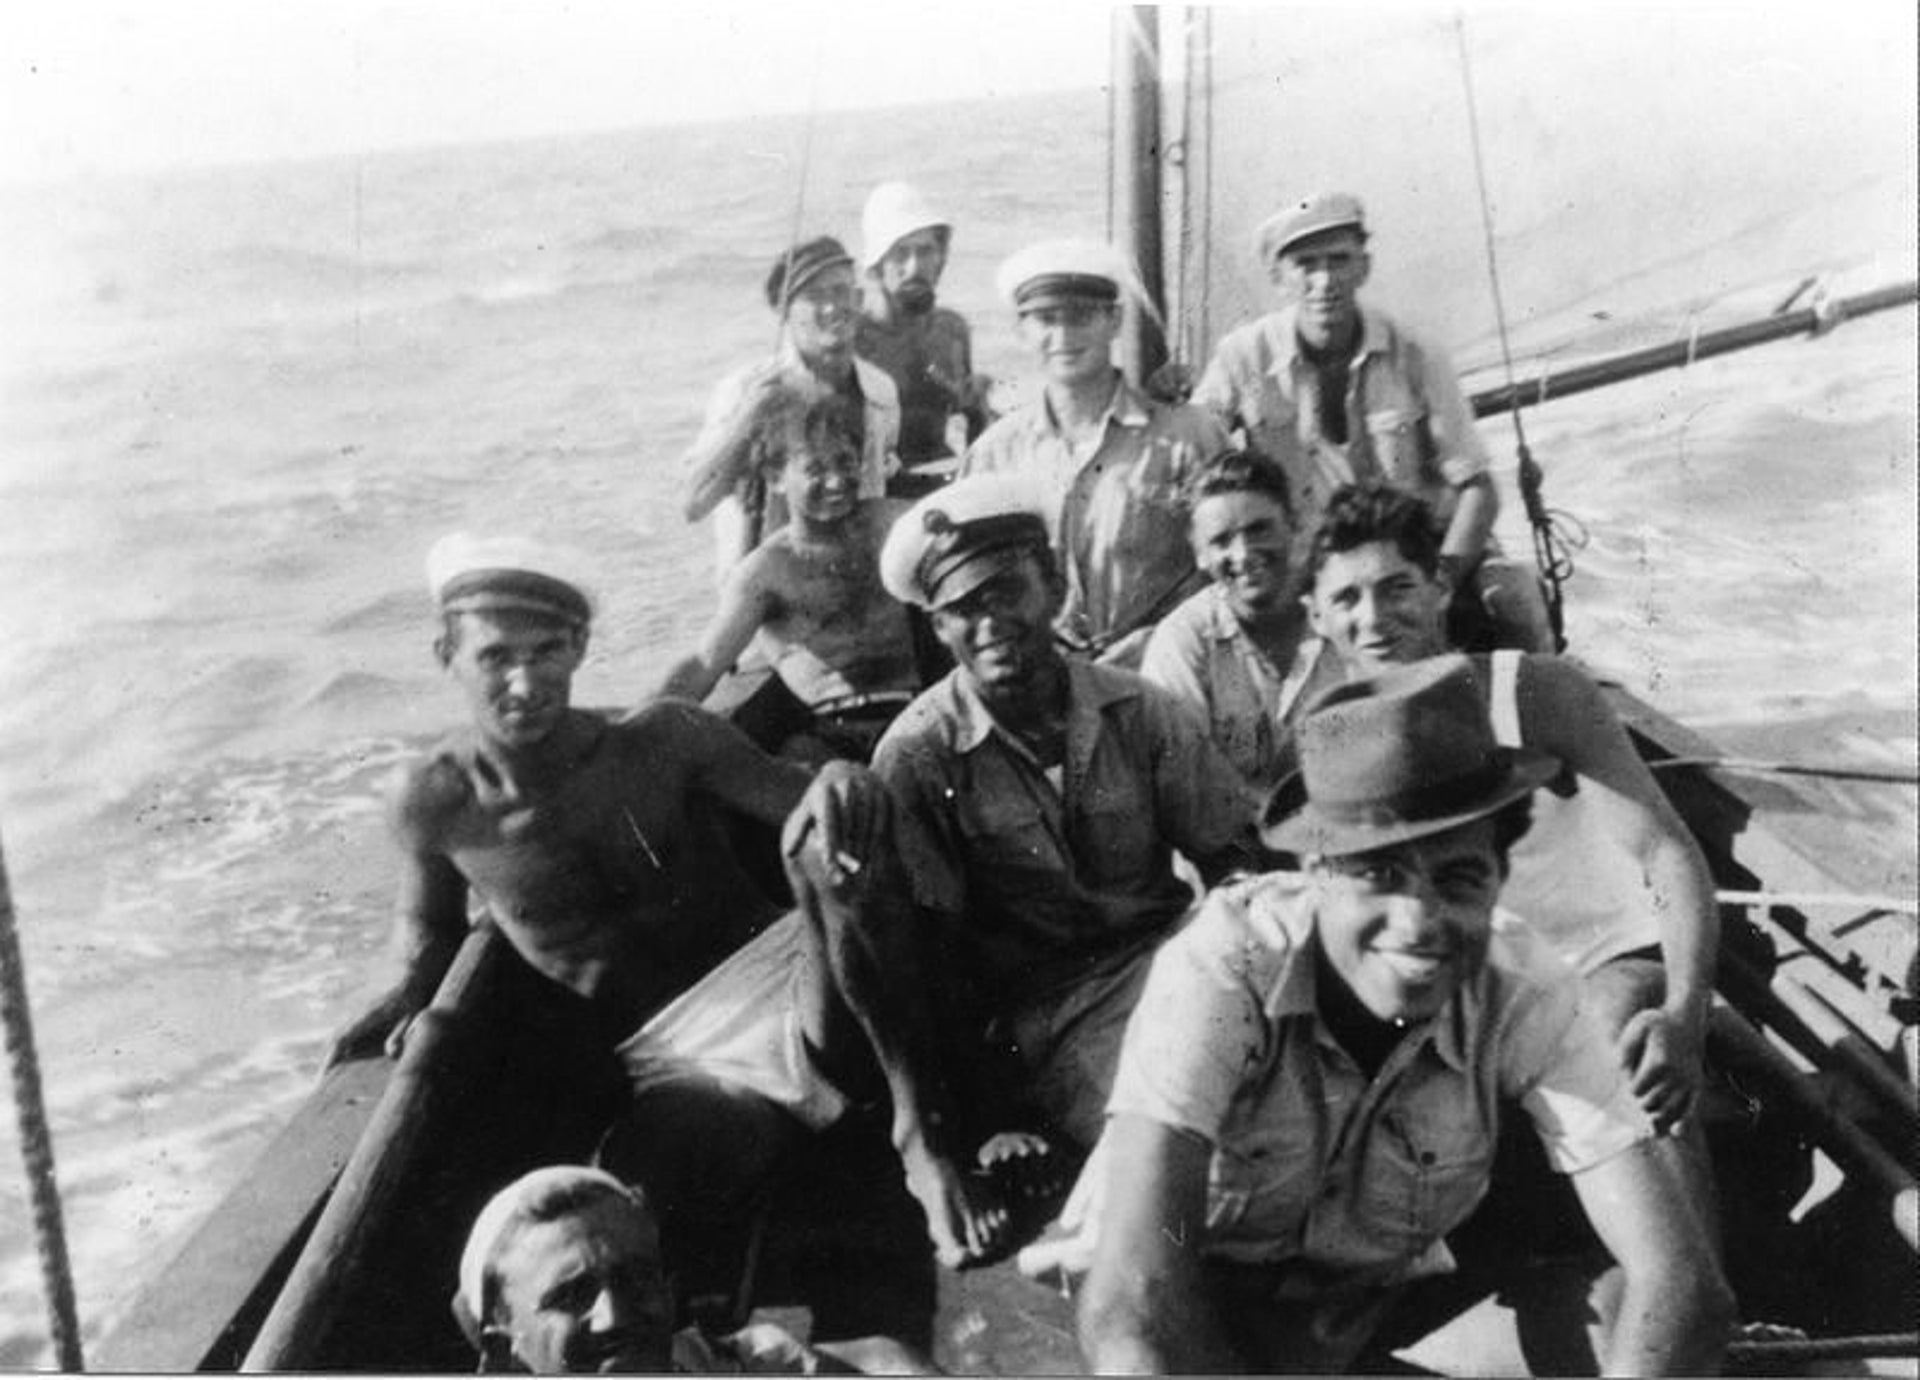 Training of 'Operation Boatswain', in the early 1940's.